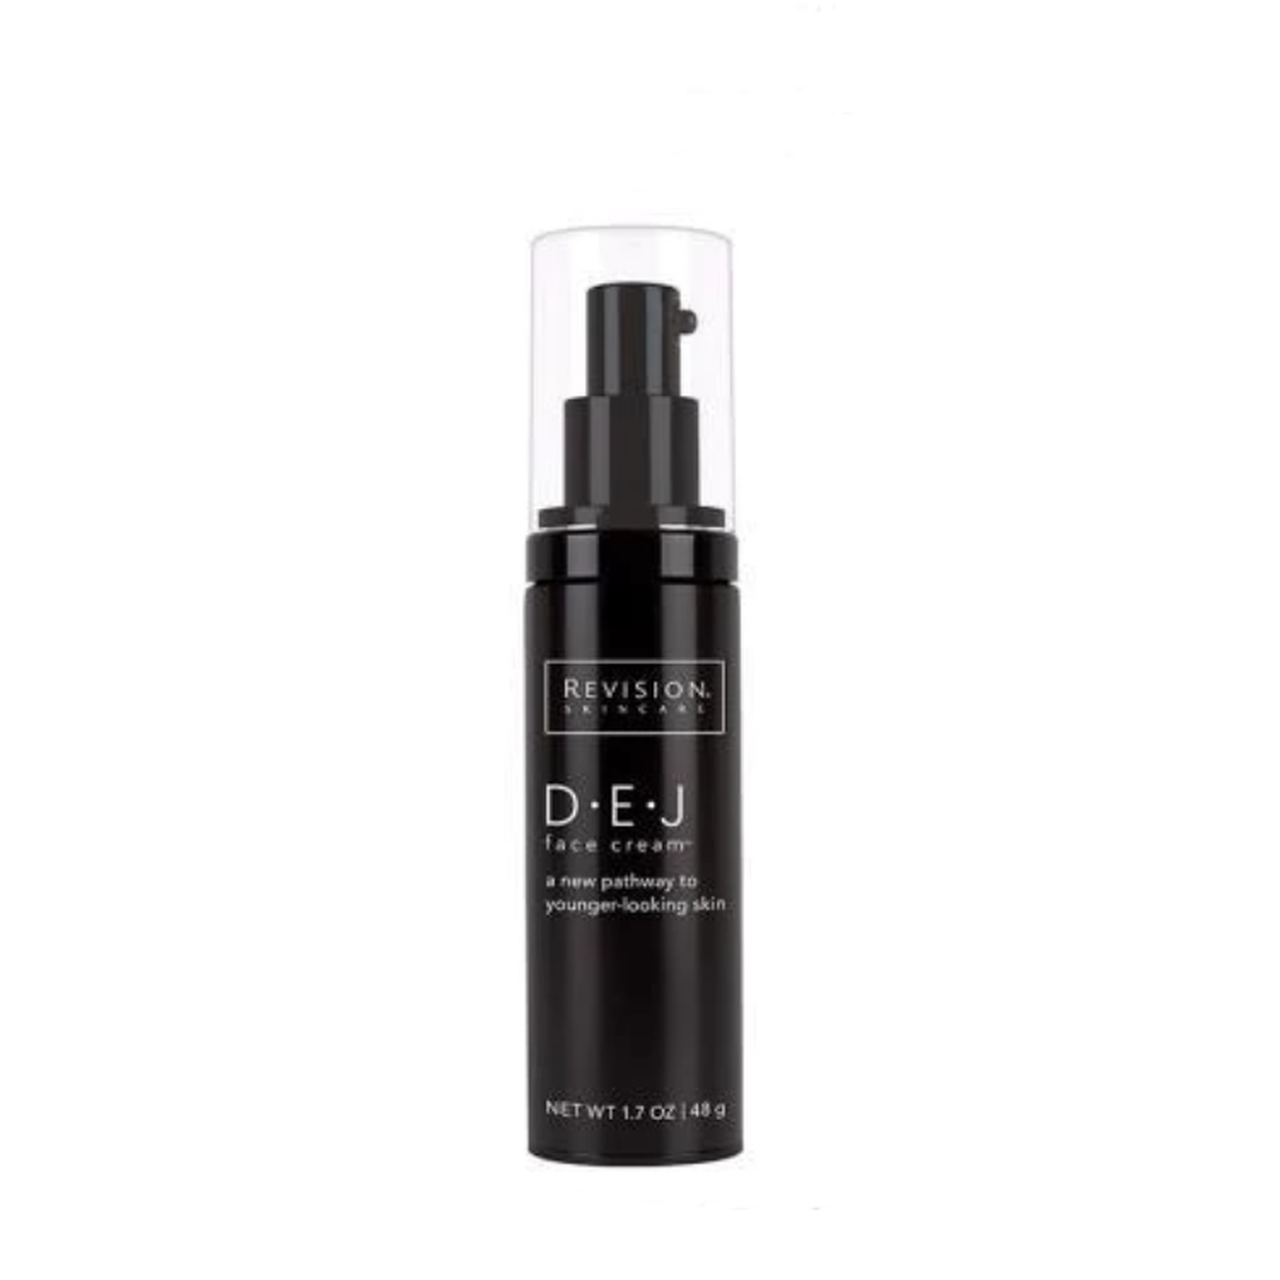 D.E.J face cream by Revision